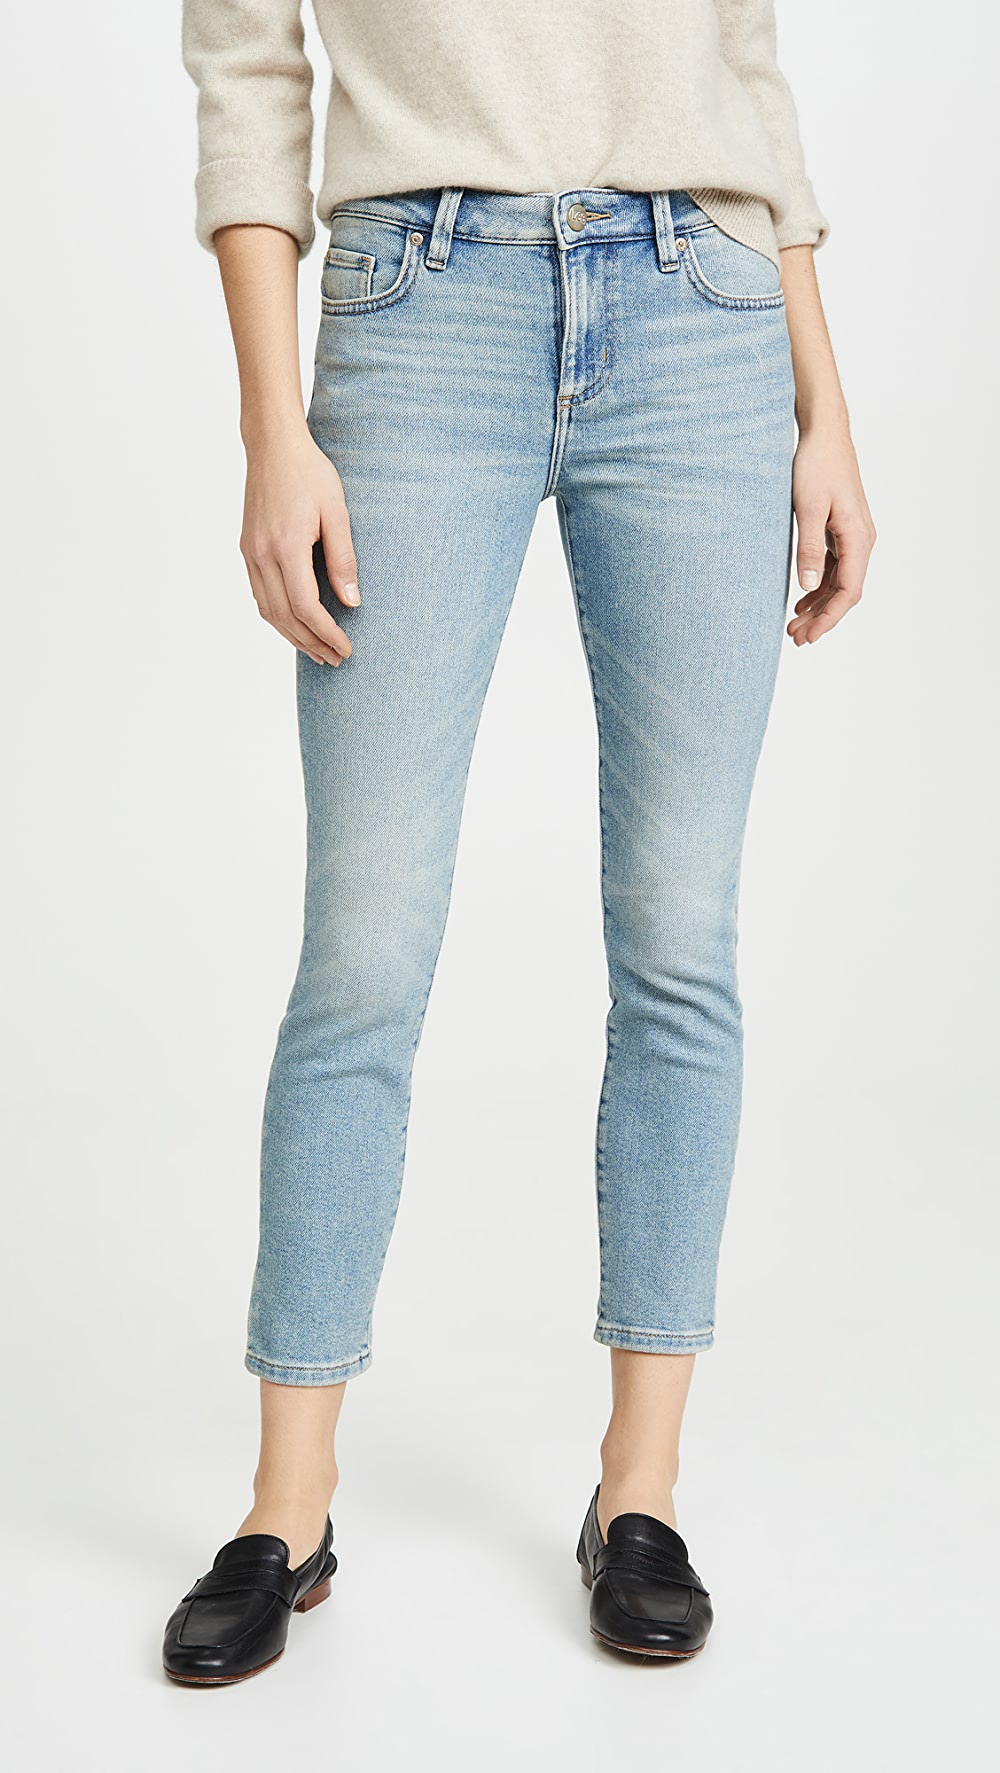 Punctual Lee Vintage Modern - Midrise Skinny Ankle Jeans Products Hot Sale